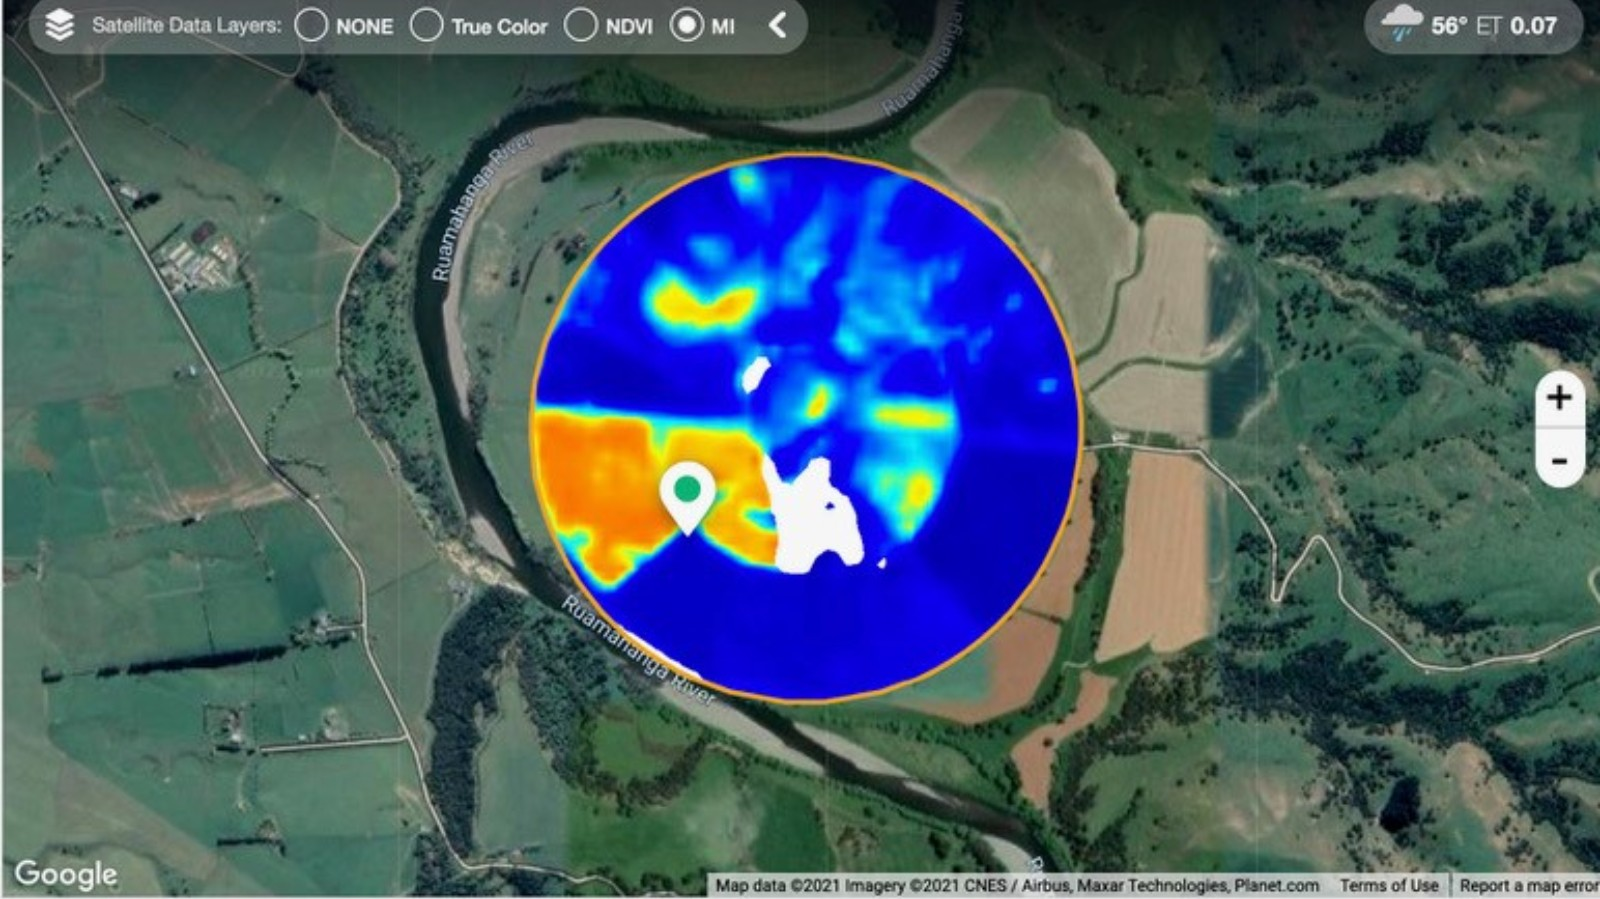 CropX, NASA Partner To Monitor Soil Quality And Enhance Global Food Production